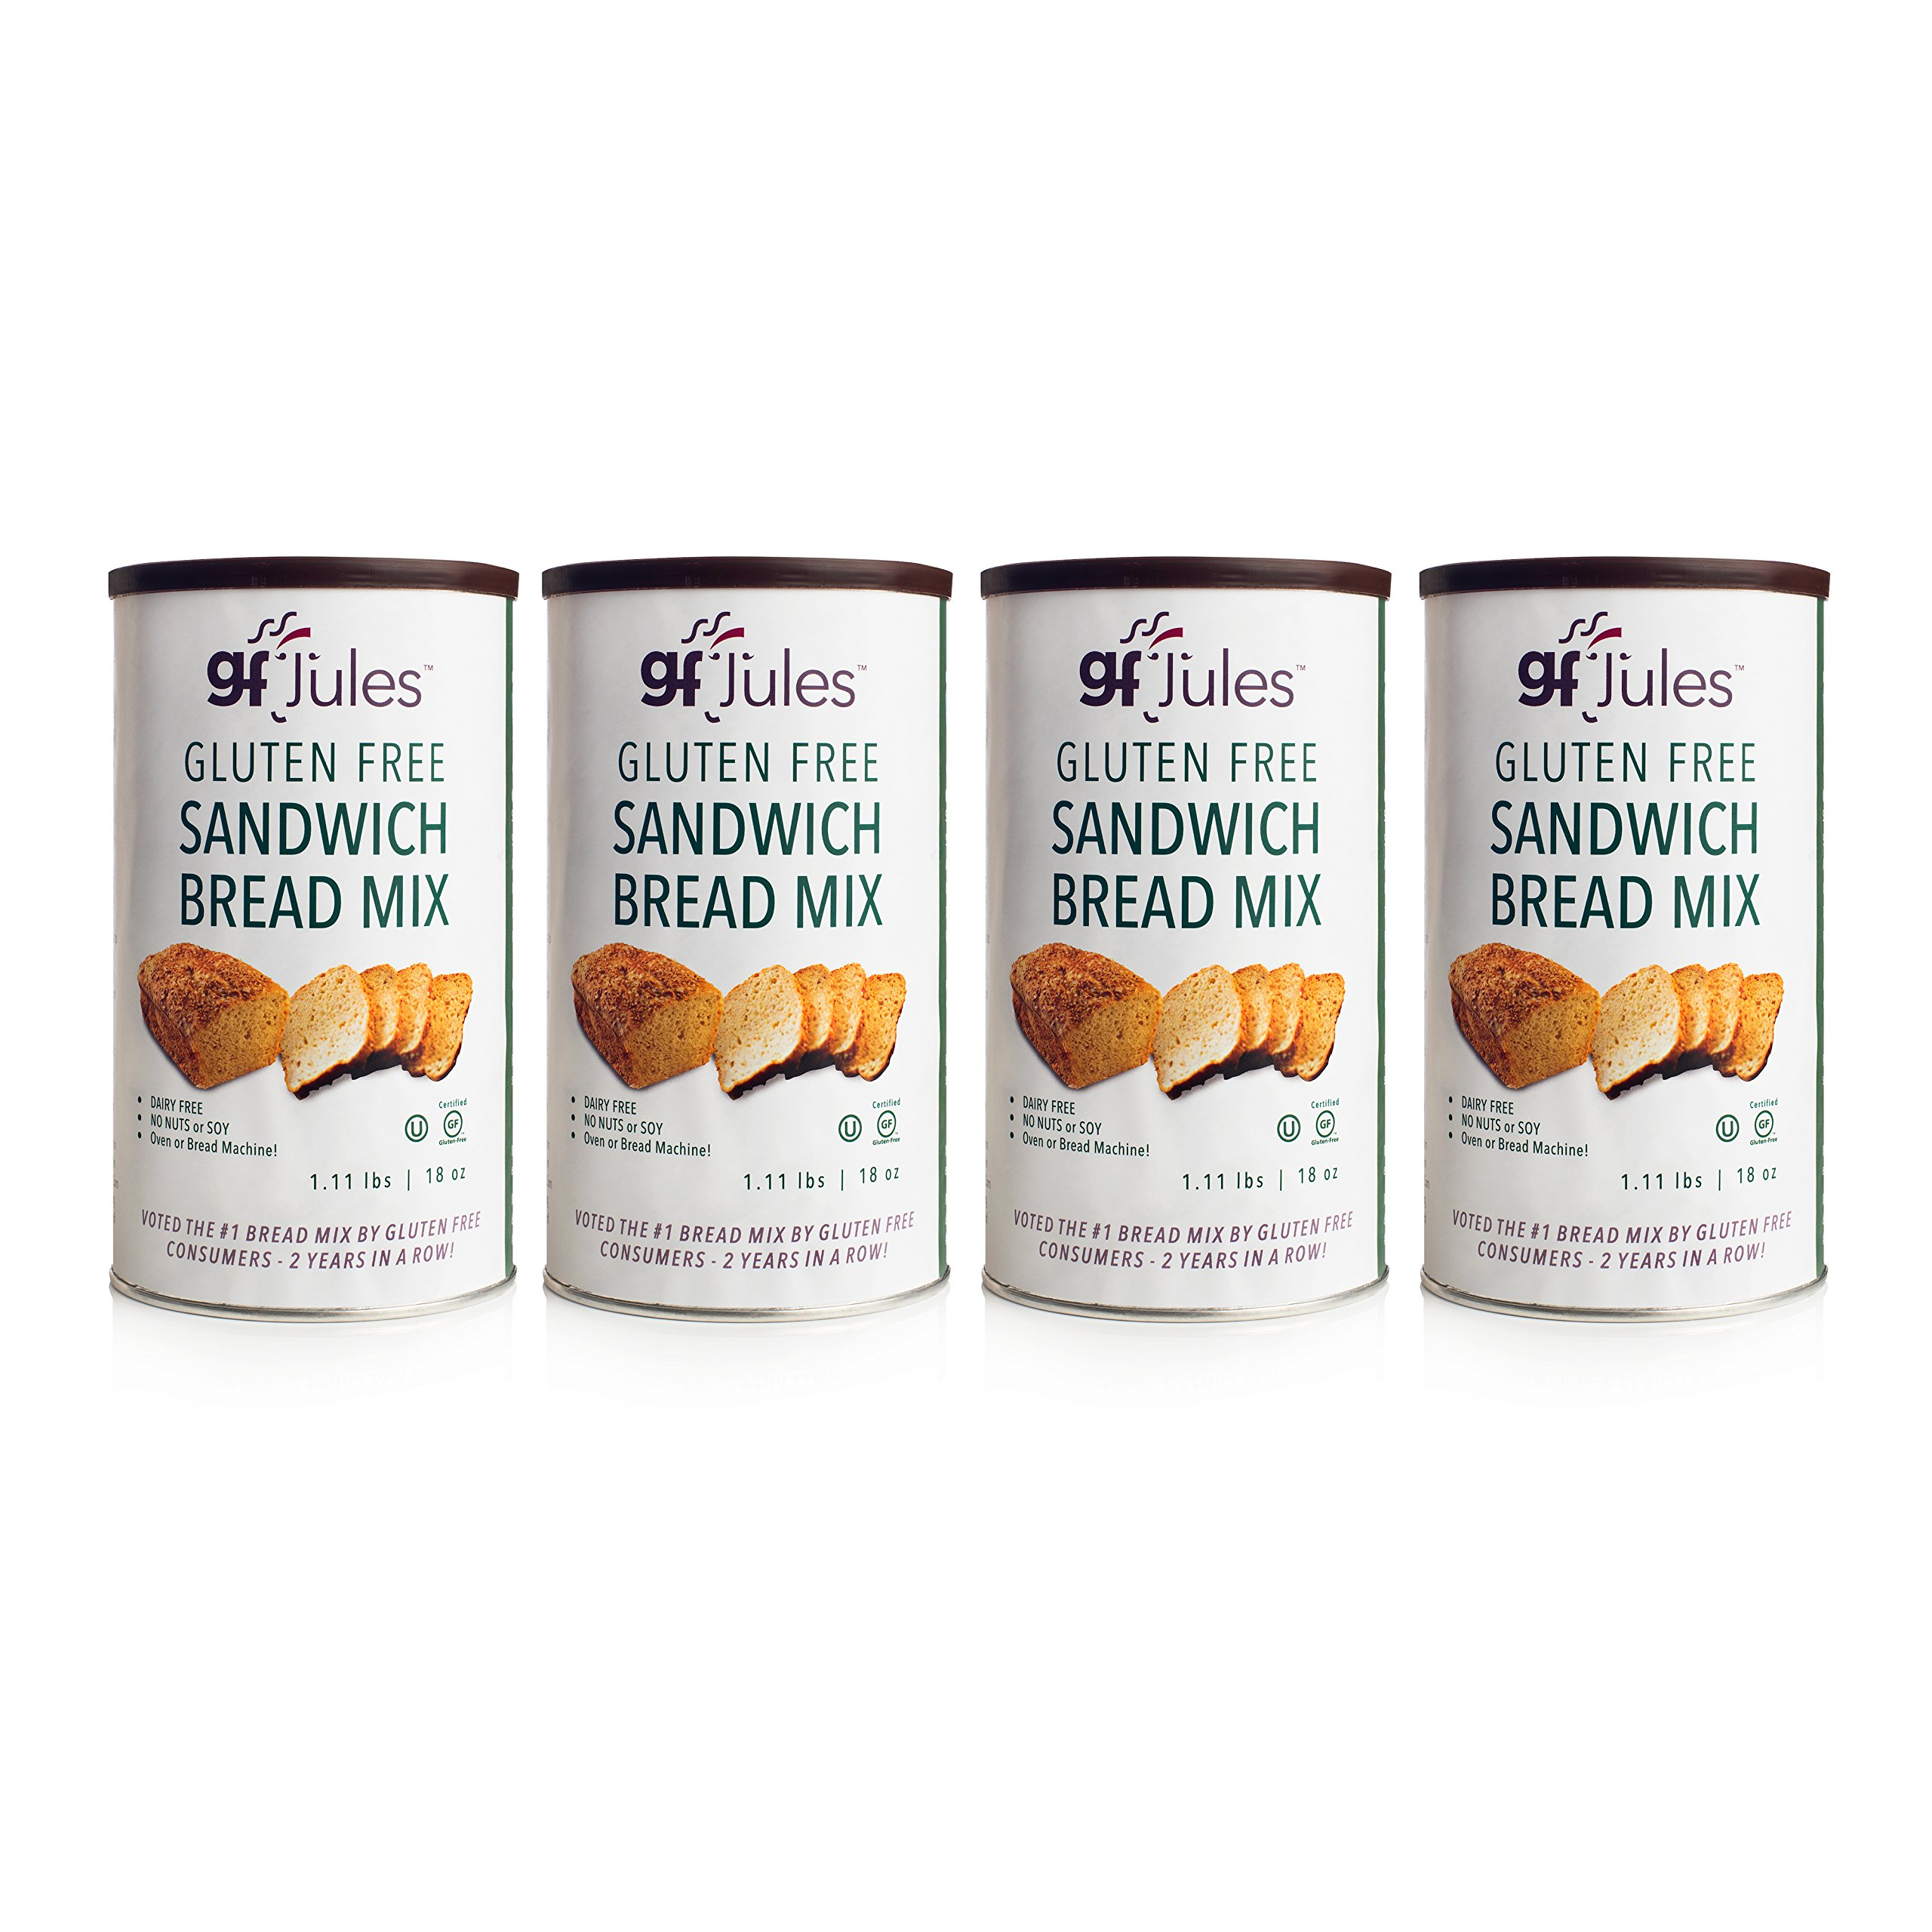 gfJules Gluten Free Sandwich Bread Mix - Voted #1 by GF Consumers 1.11 lbs, Pack of 4 by gfJules